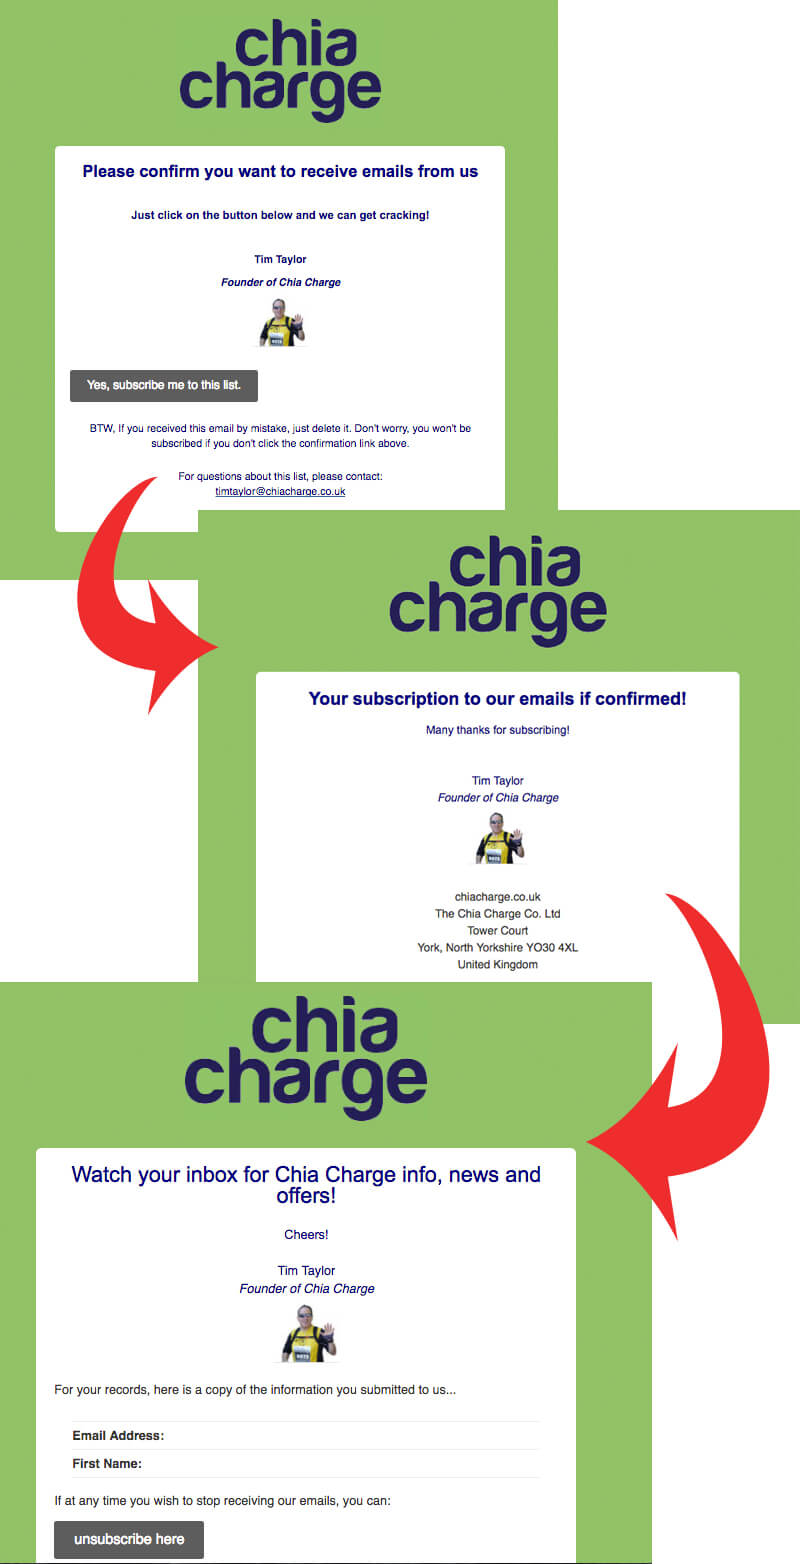 chia charge mailchimp double opt in sign up process